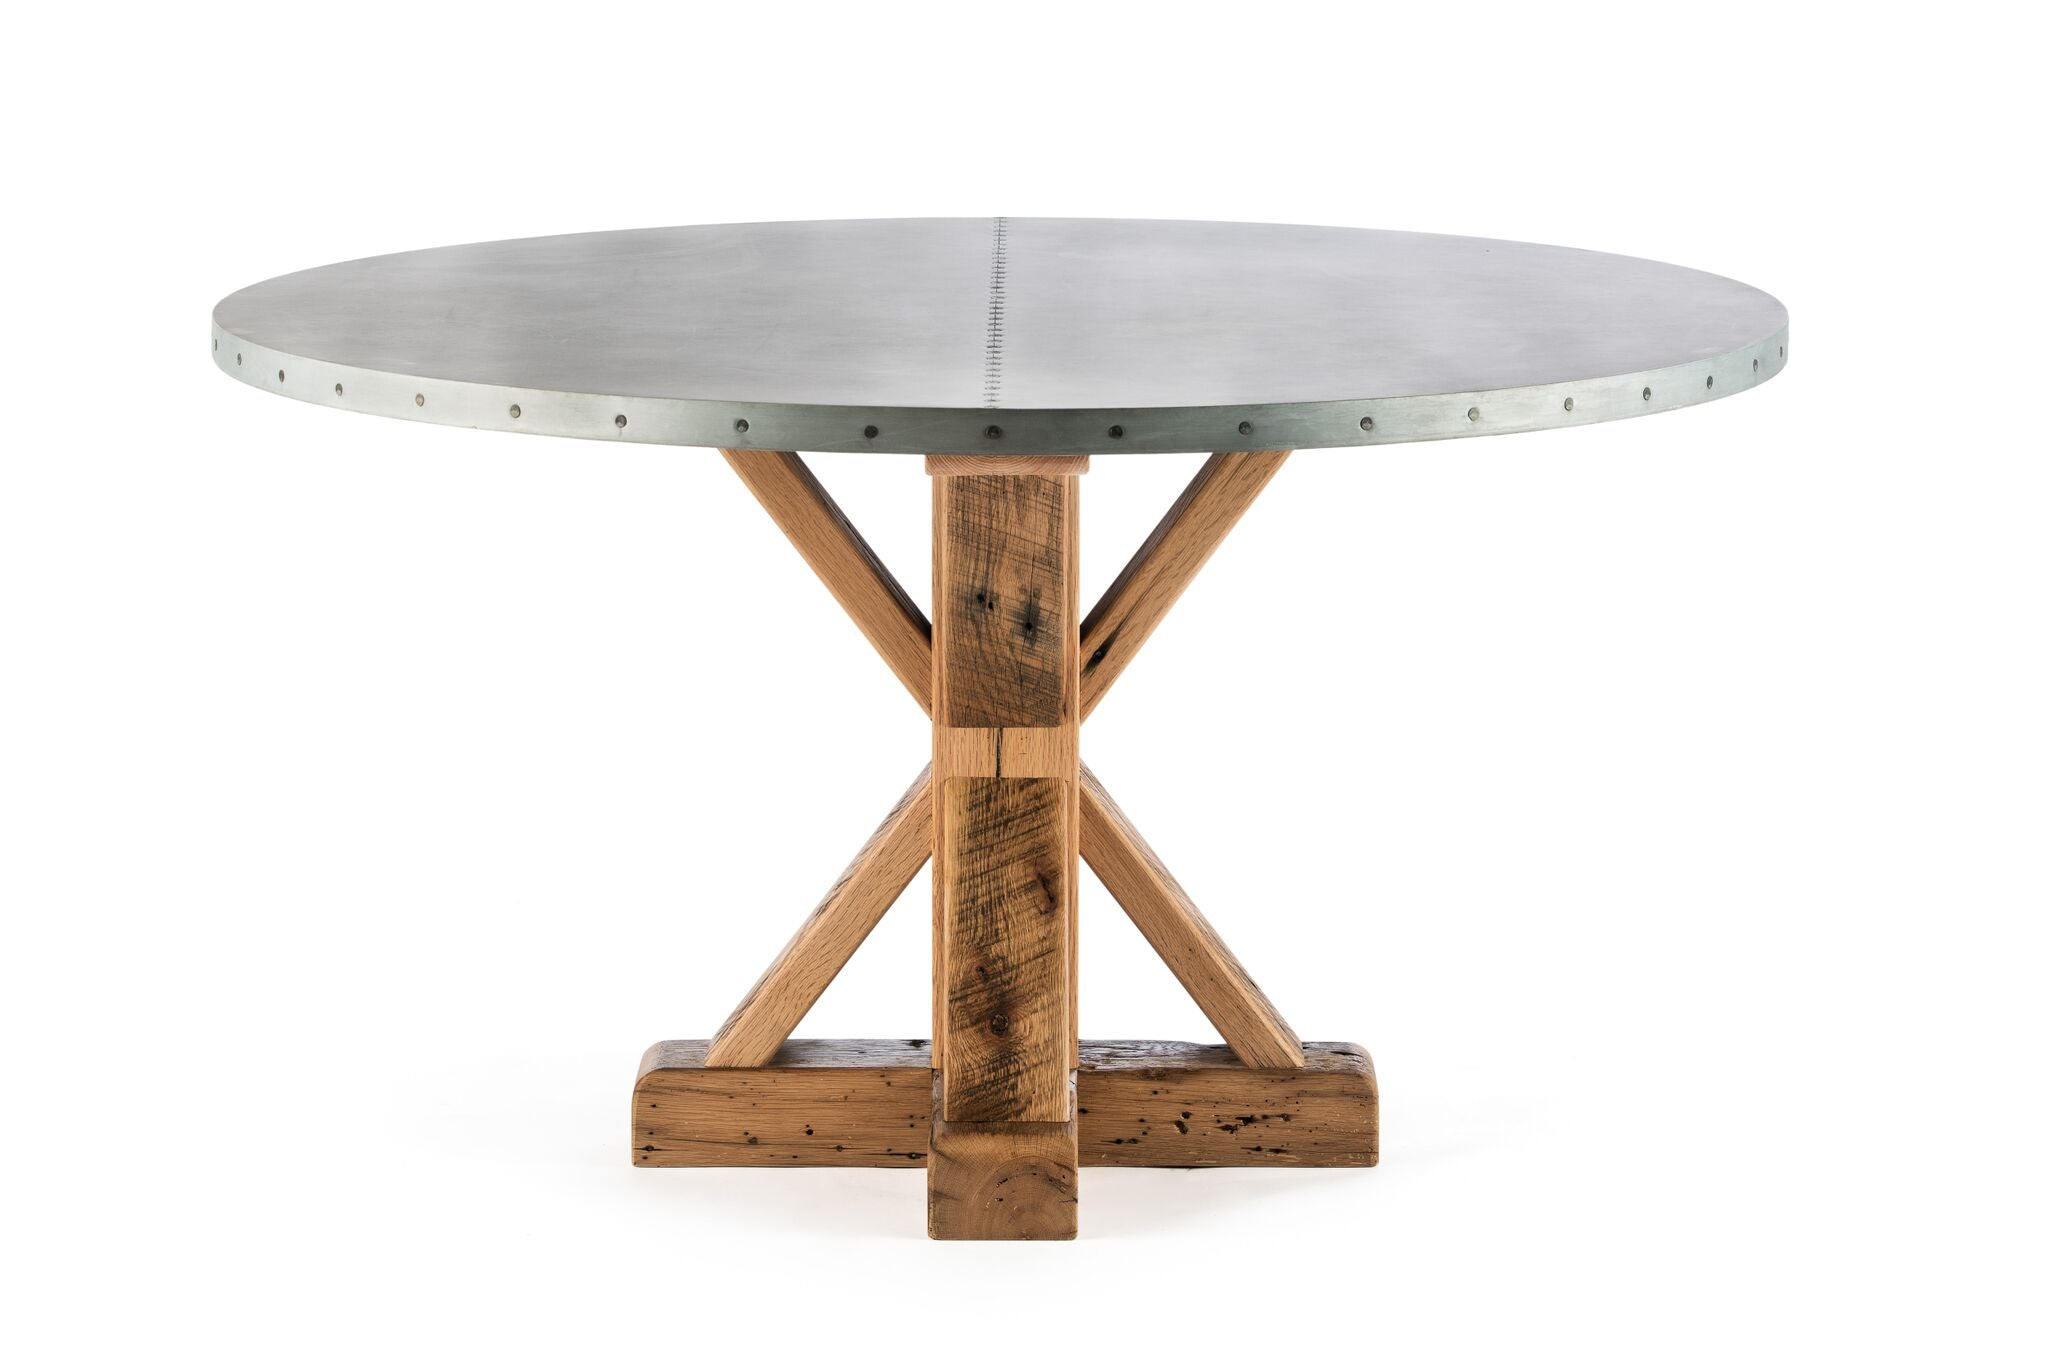 "Zinc Round Tables | French Trestle Table | CLASSIC | Driftwood Grey on Reclaimed Oak | CUSTOM SIZE D 36 H 30 | 1.5"" Standard 